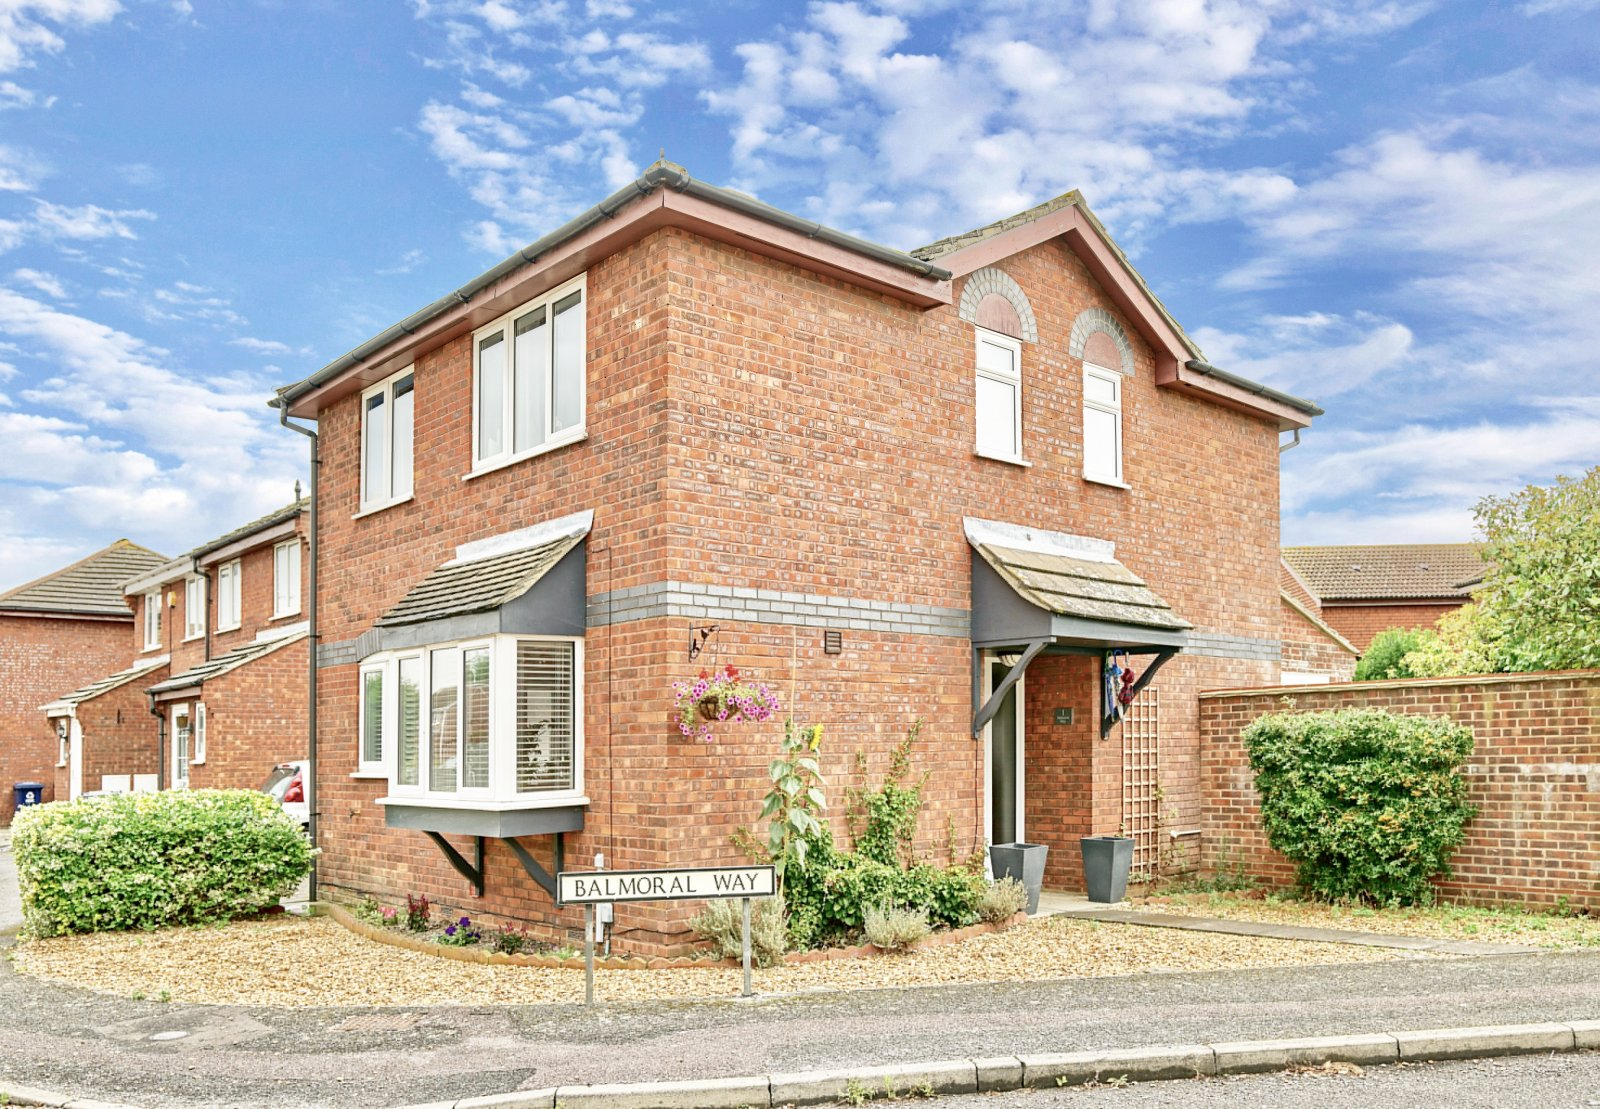 3 bed house for sale in Eynesbury, Balmoral Way, PE19 2RJ - Property Image 1